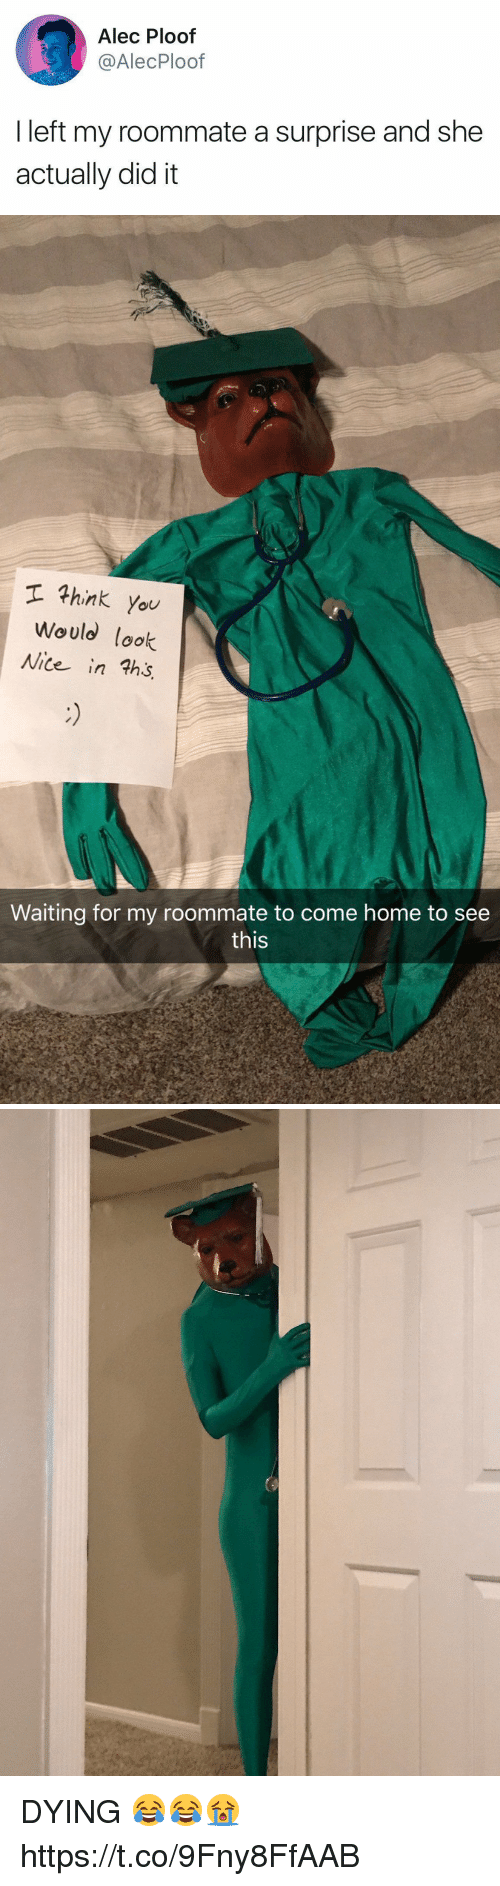 Roommate, Home, and Girl Memes: Alec Ploof  @AlecPloof  I left my roommate a surprise and she  actually did it   hink you  Would look  Nite in ths  Waiting for my roommate to come home to see  this DYING 😂😂😭 https://t.co/9Fny8FfAAB